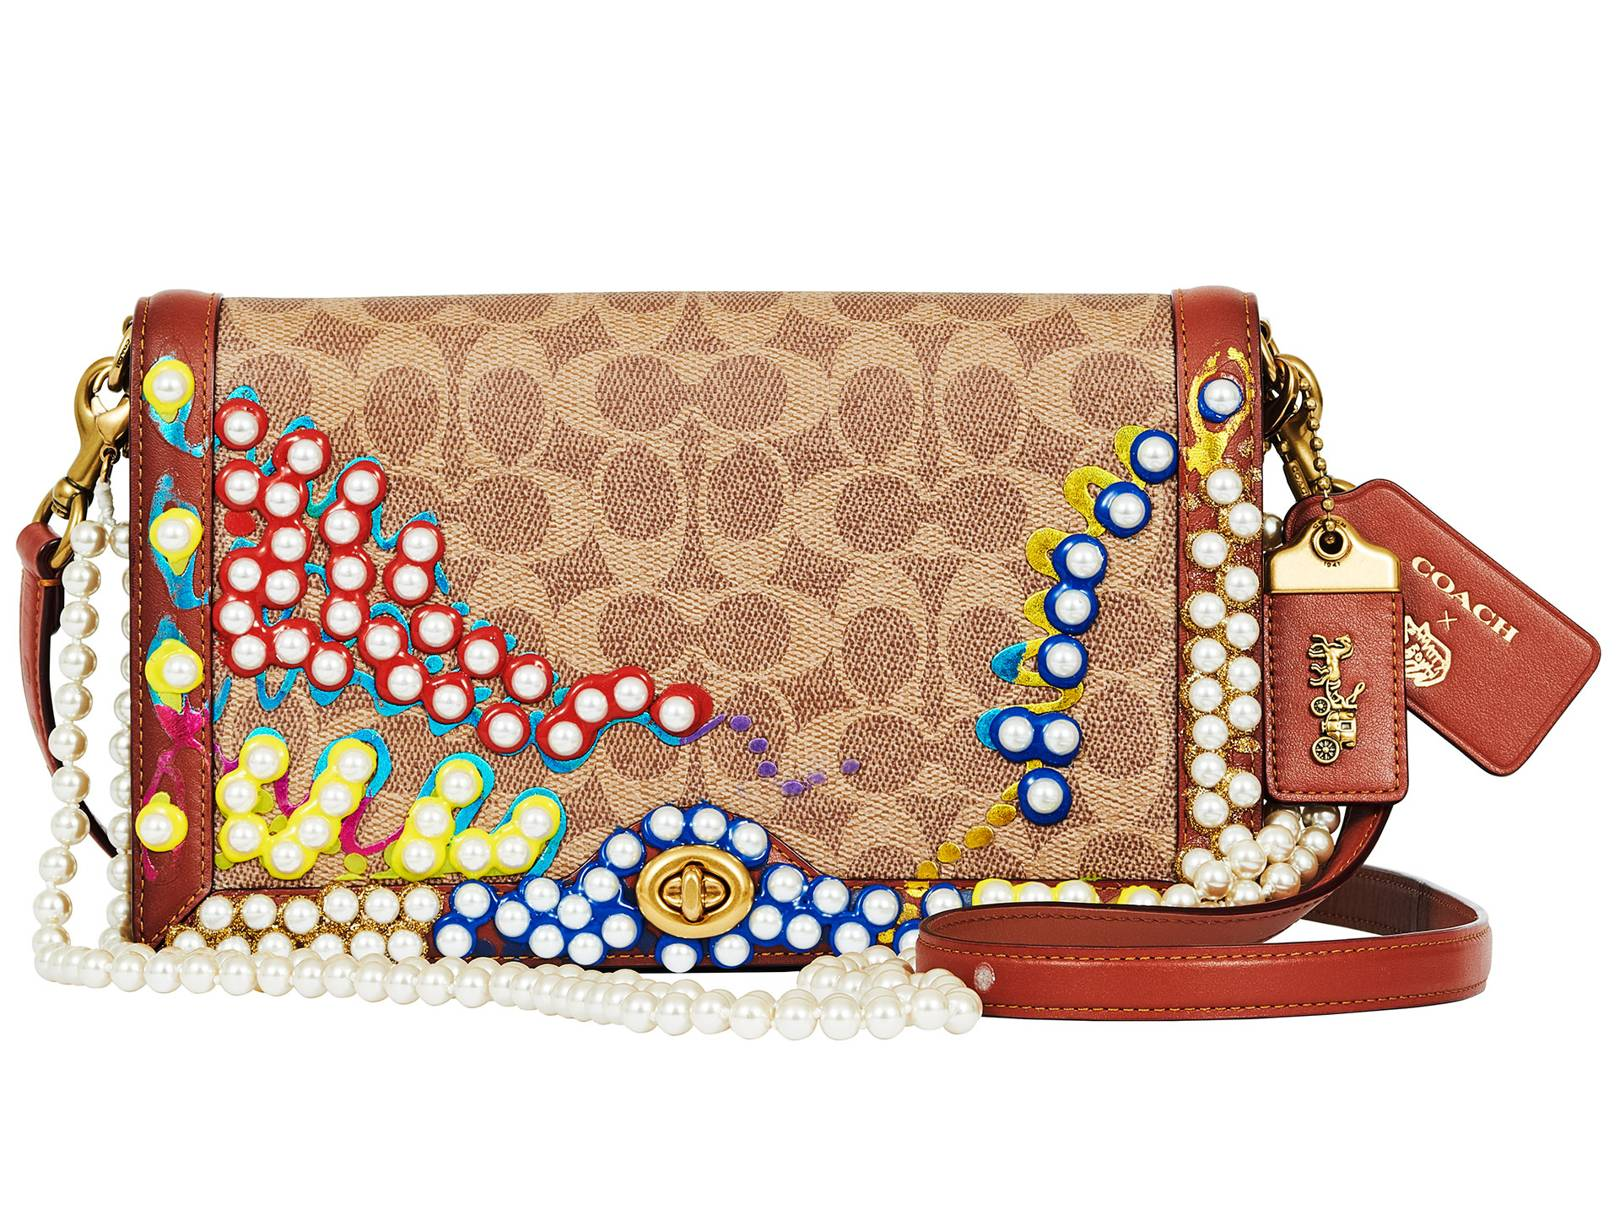 Coach x Matty Bovan Collaboration  Everything You Need To Know About AW18 s  Standout Bags  503a743cefdeb